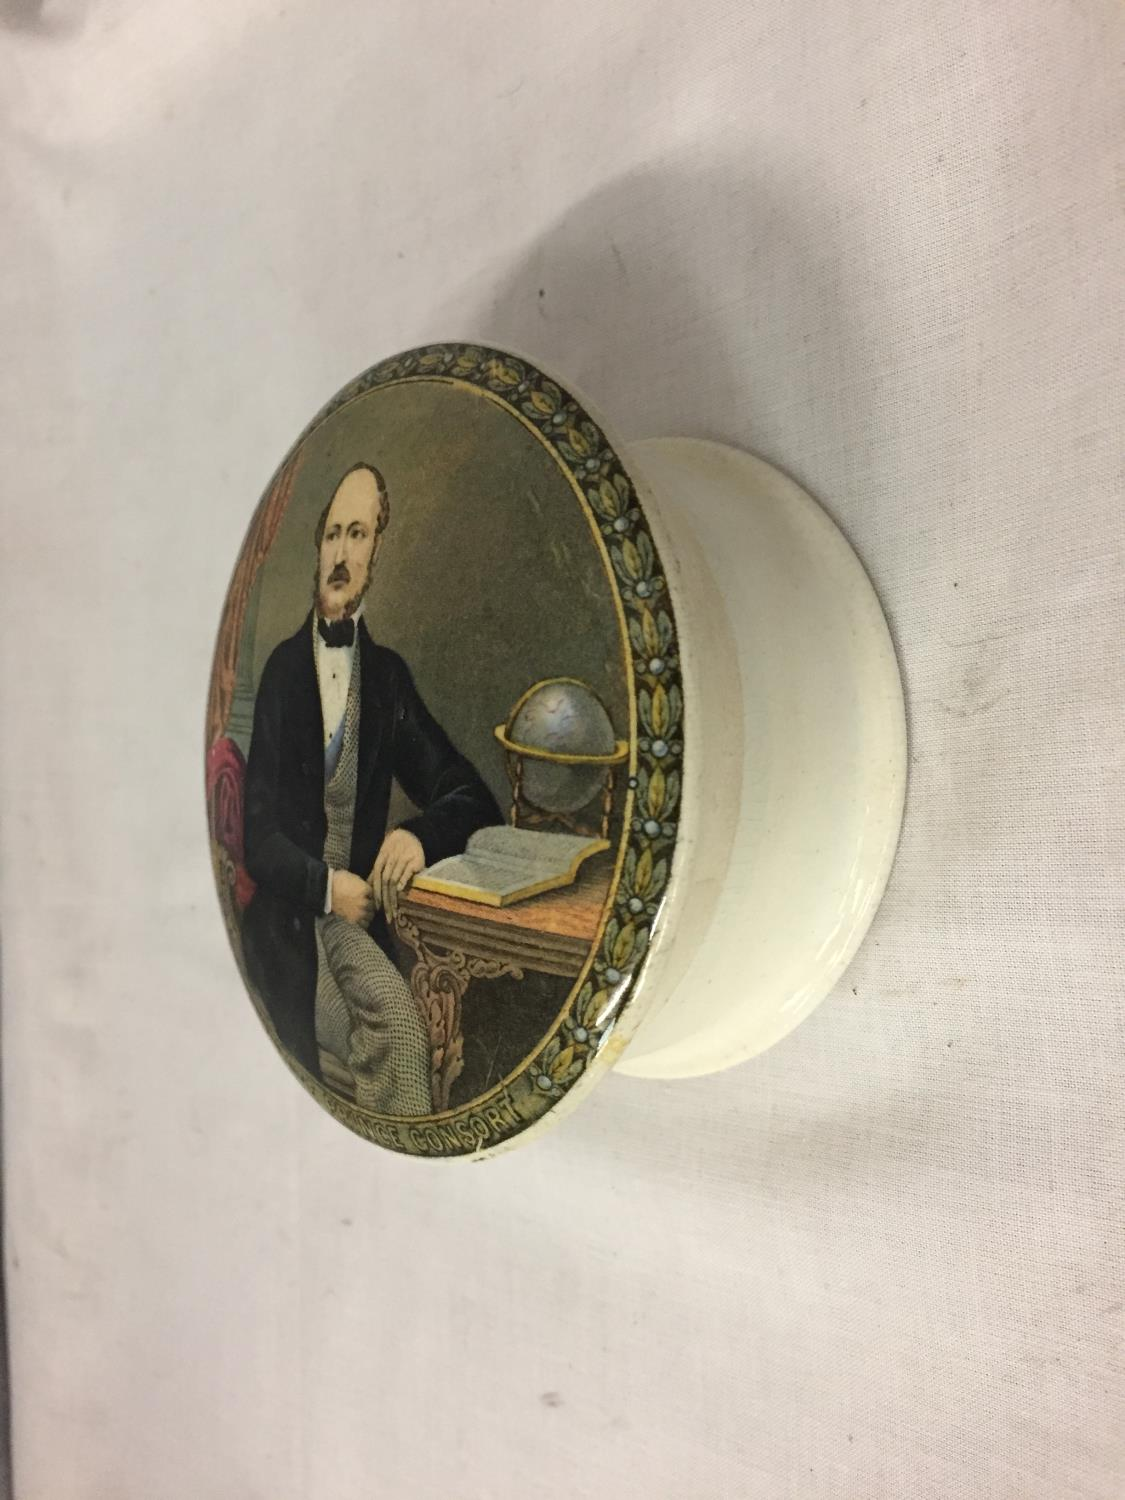 A PRATT WARE LIDDED POT 'THE LATE PRINCE CONSORT' (VICTORIA'S HUSBAND) - Image 2 of 5